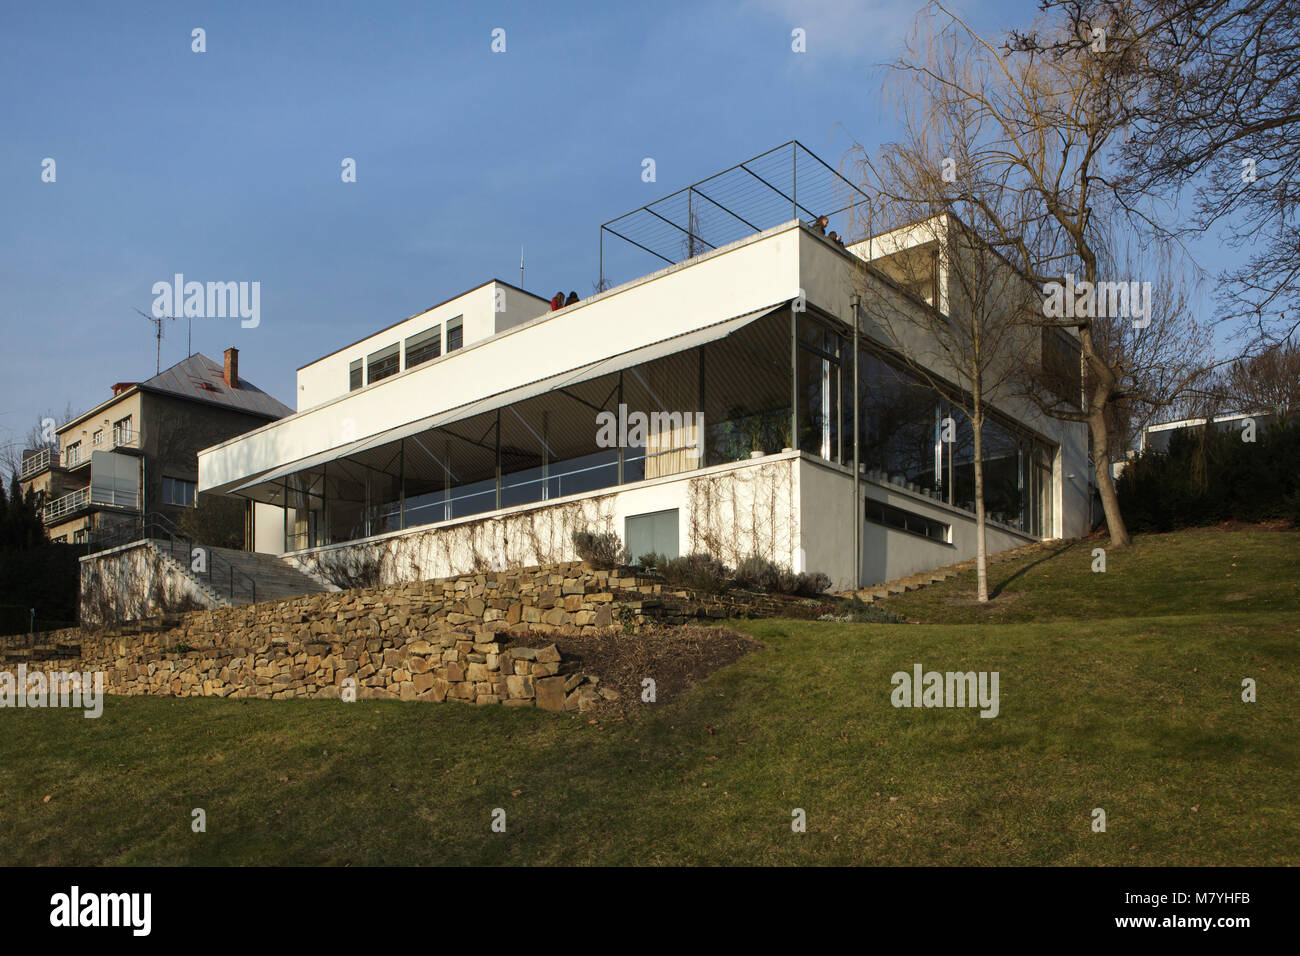 Villa Tugendhat Villa Tugendhat In Brno Czech Republic Pictured From The Garden